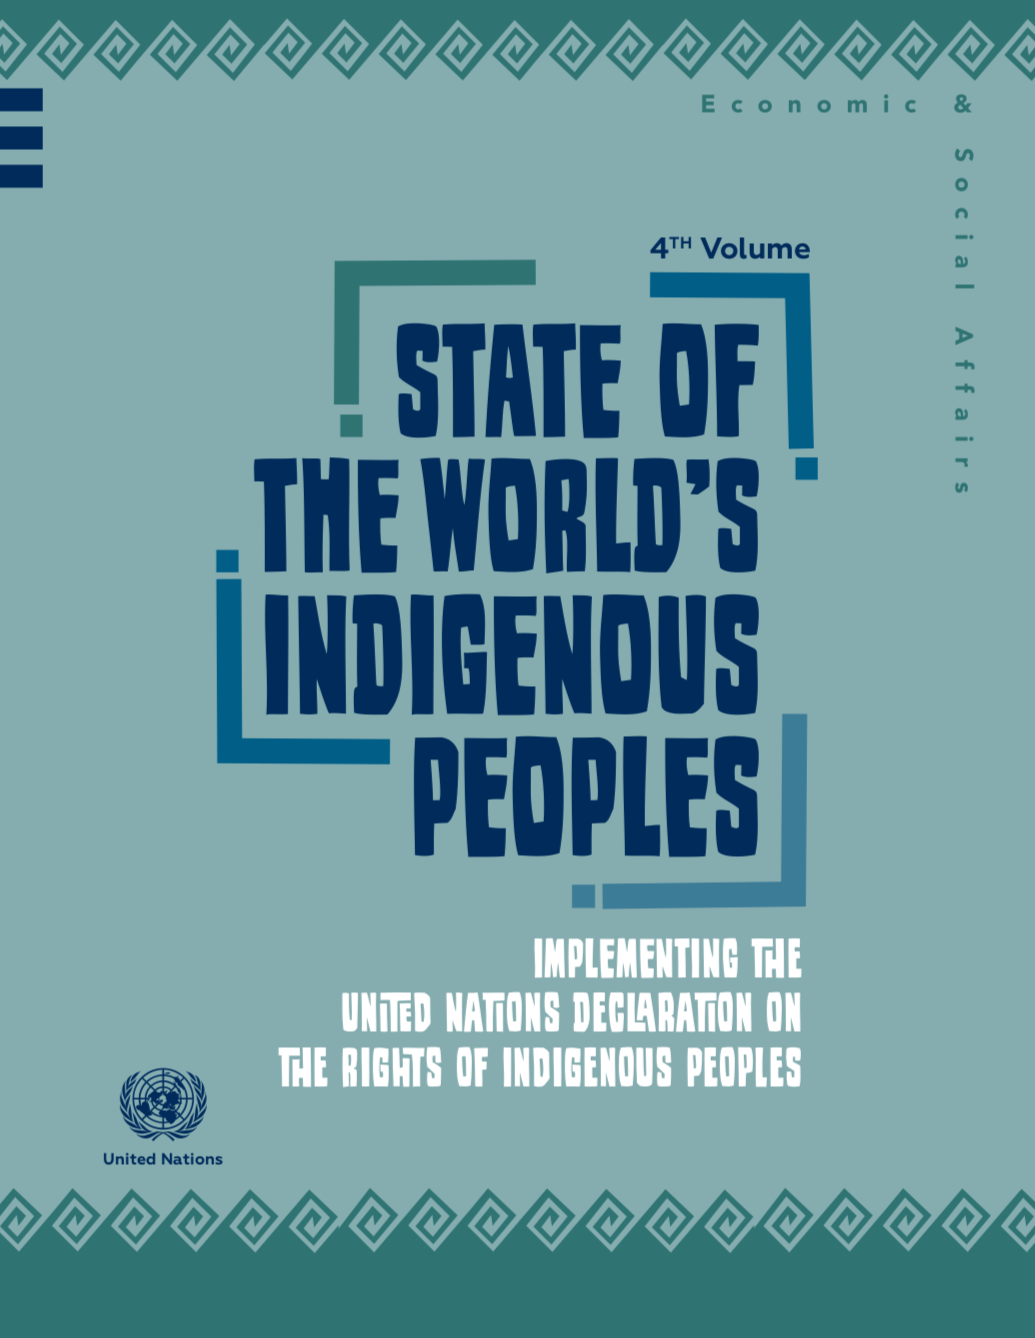 4th Vol.: STATE OF THE WORLD'S INDIGENoUS PEOPLES: Implementing the United Nations Declaration on the Rights of Indigenous Peoples